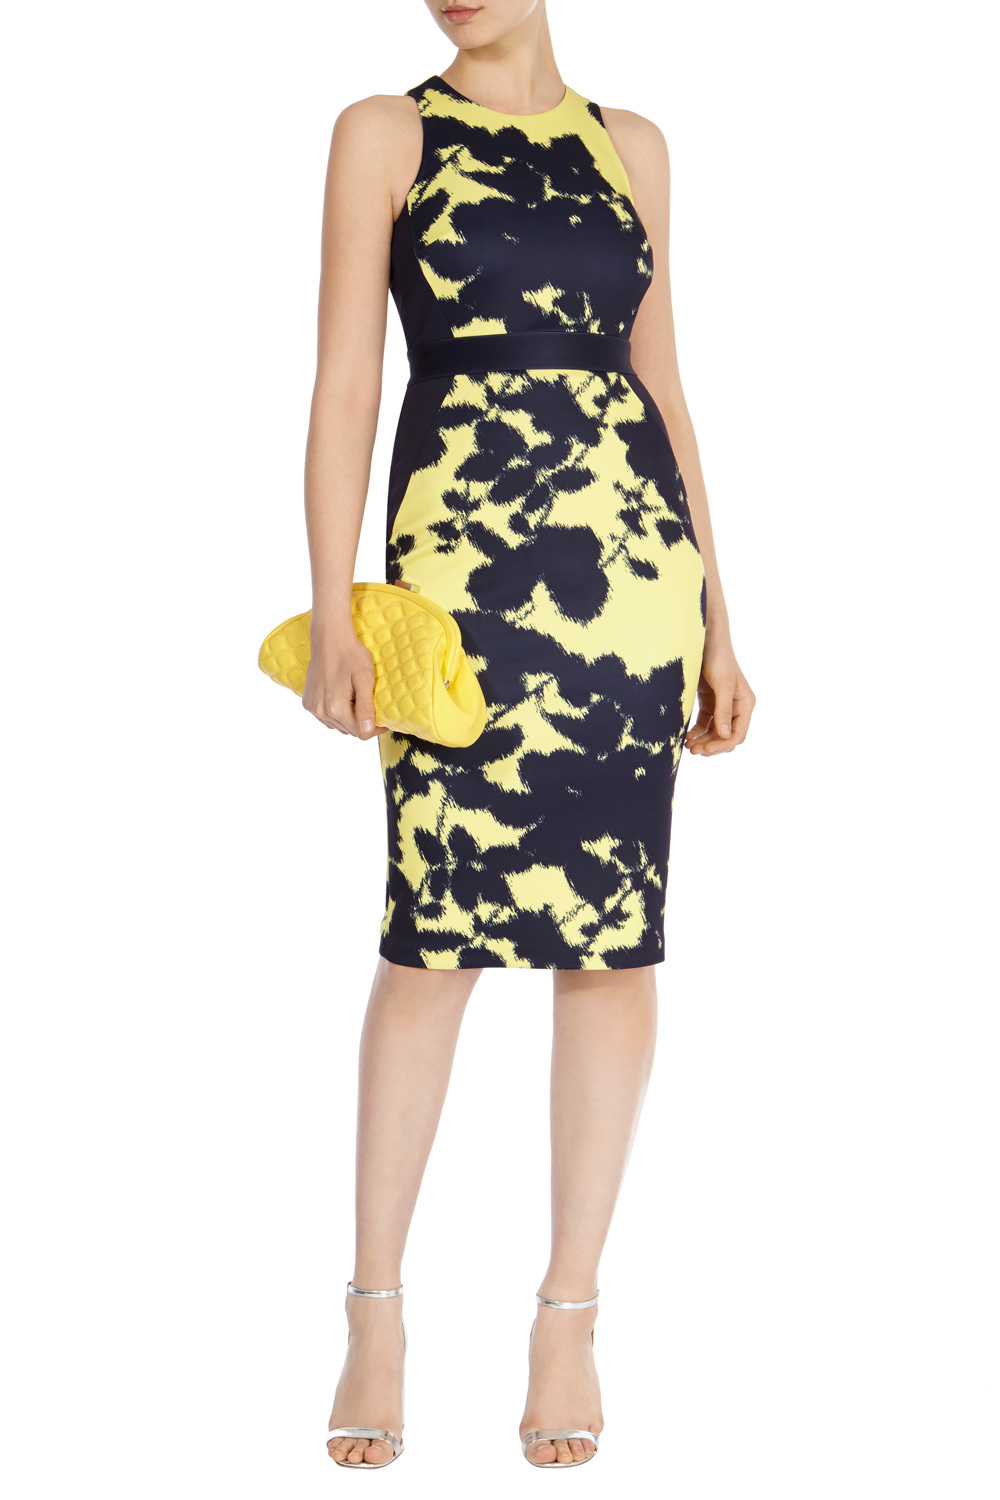 Chapati Print Nina Dress - fit: tight; sleeve style: sleeveless; style: bodycon; secondary colour: navy; predominant colour: primrose yellow; occasions: evening; length: on the knee; fibres: polyester/polyamide - 100%; neckline: crew; sleeve length: sleeveless; texture group: jersey - clingy; pattern type: fabric; pattern: florals; season: s/s 2016; wardrobe: event